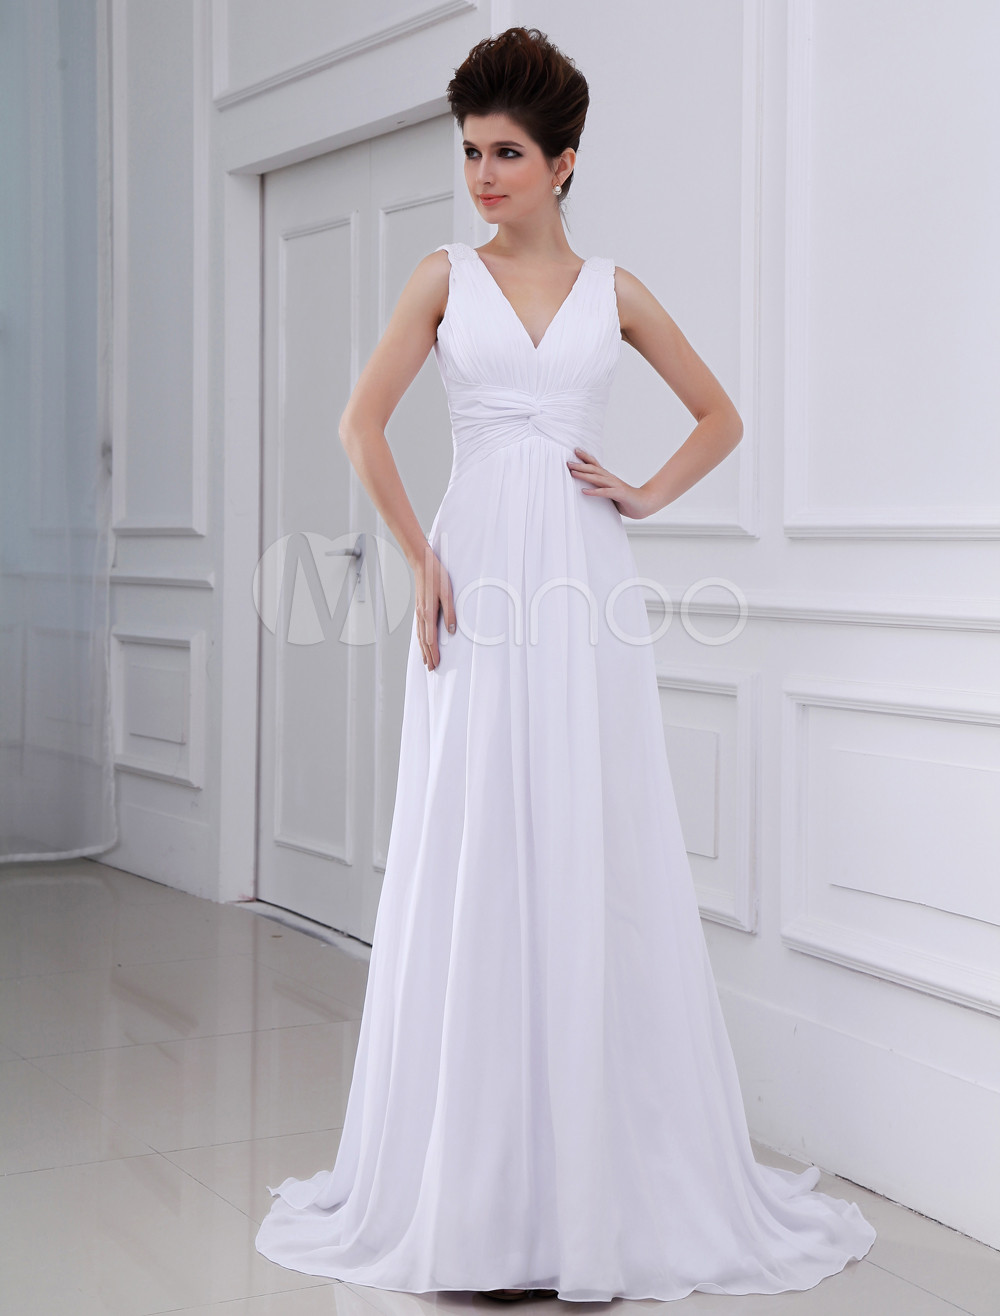 Elegant Sheath V-Neck Empire Waist Chiffon Wedding Dress For Bride ...